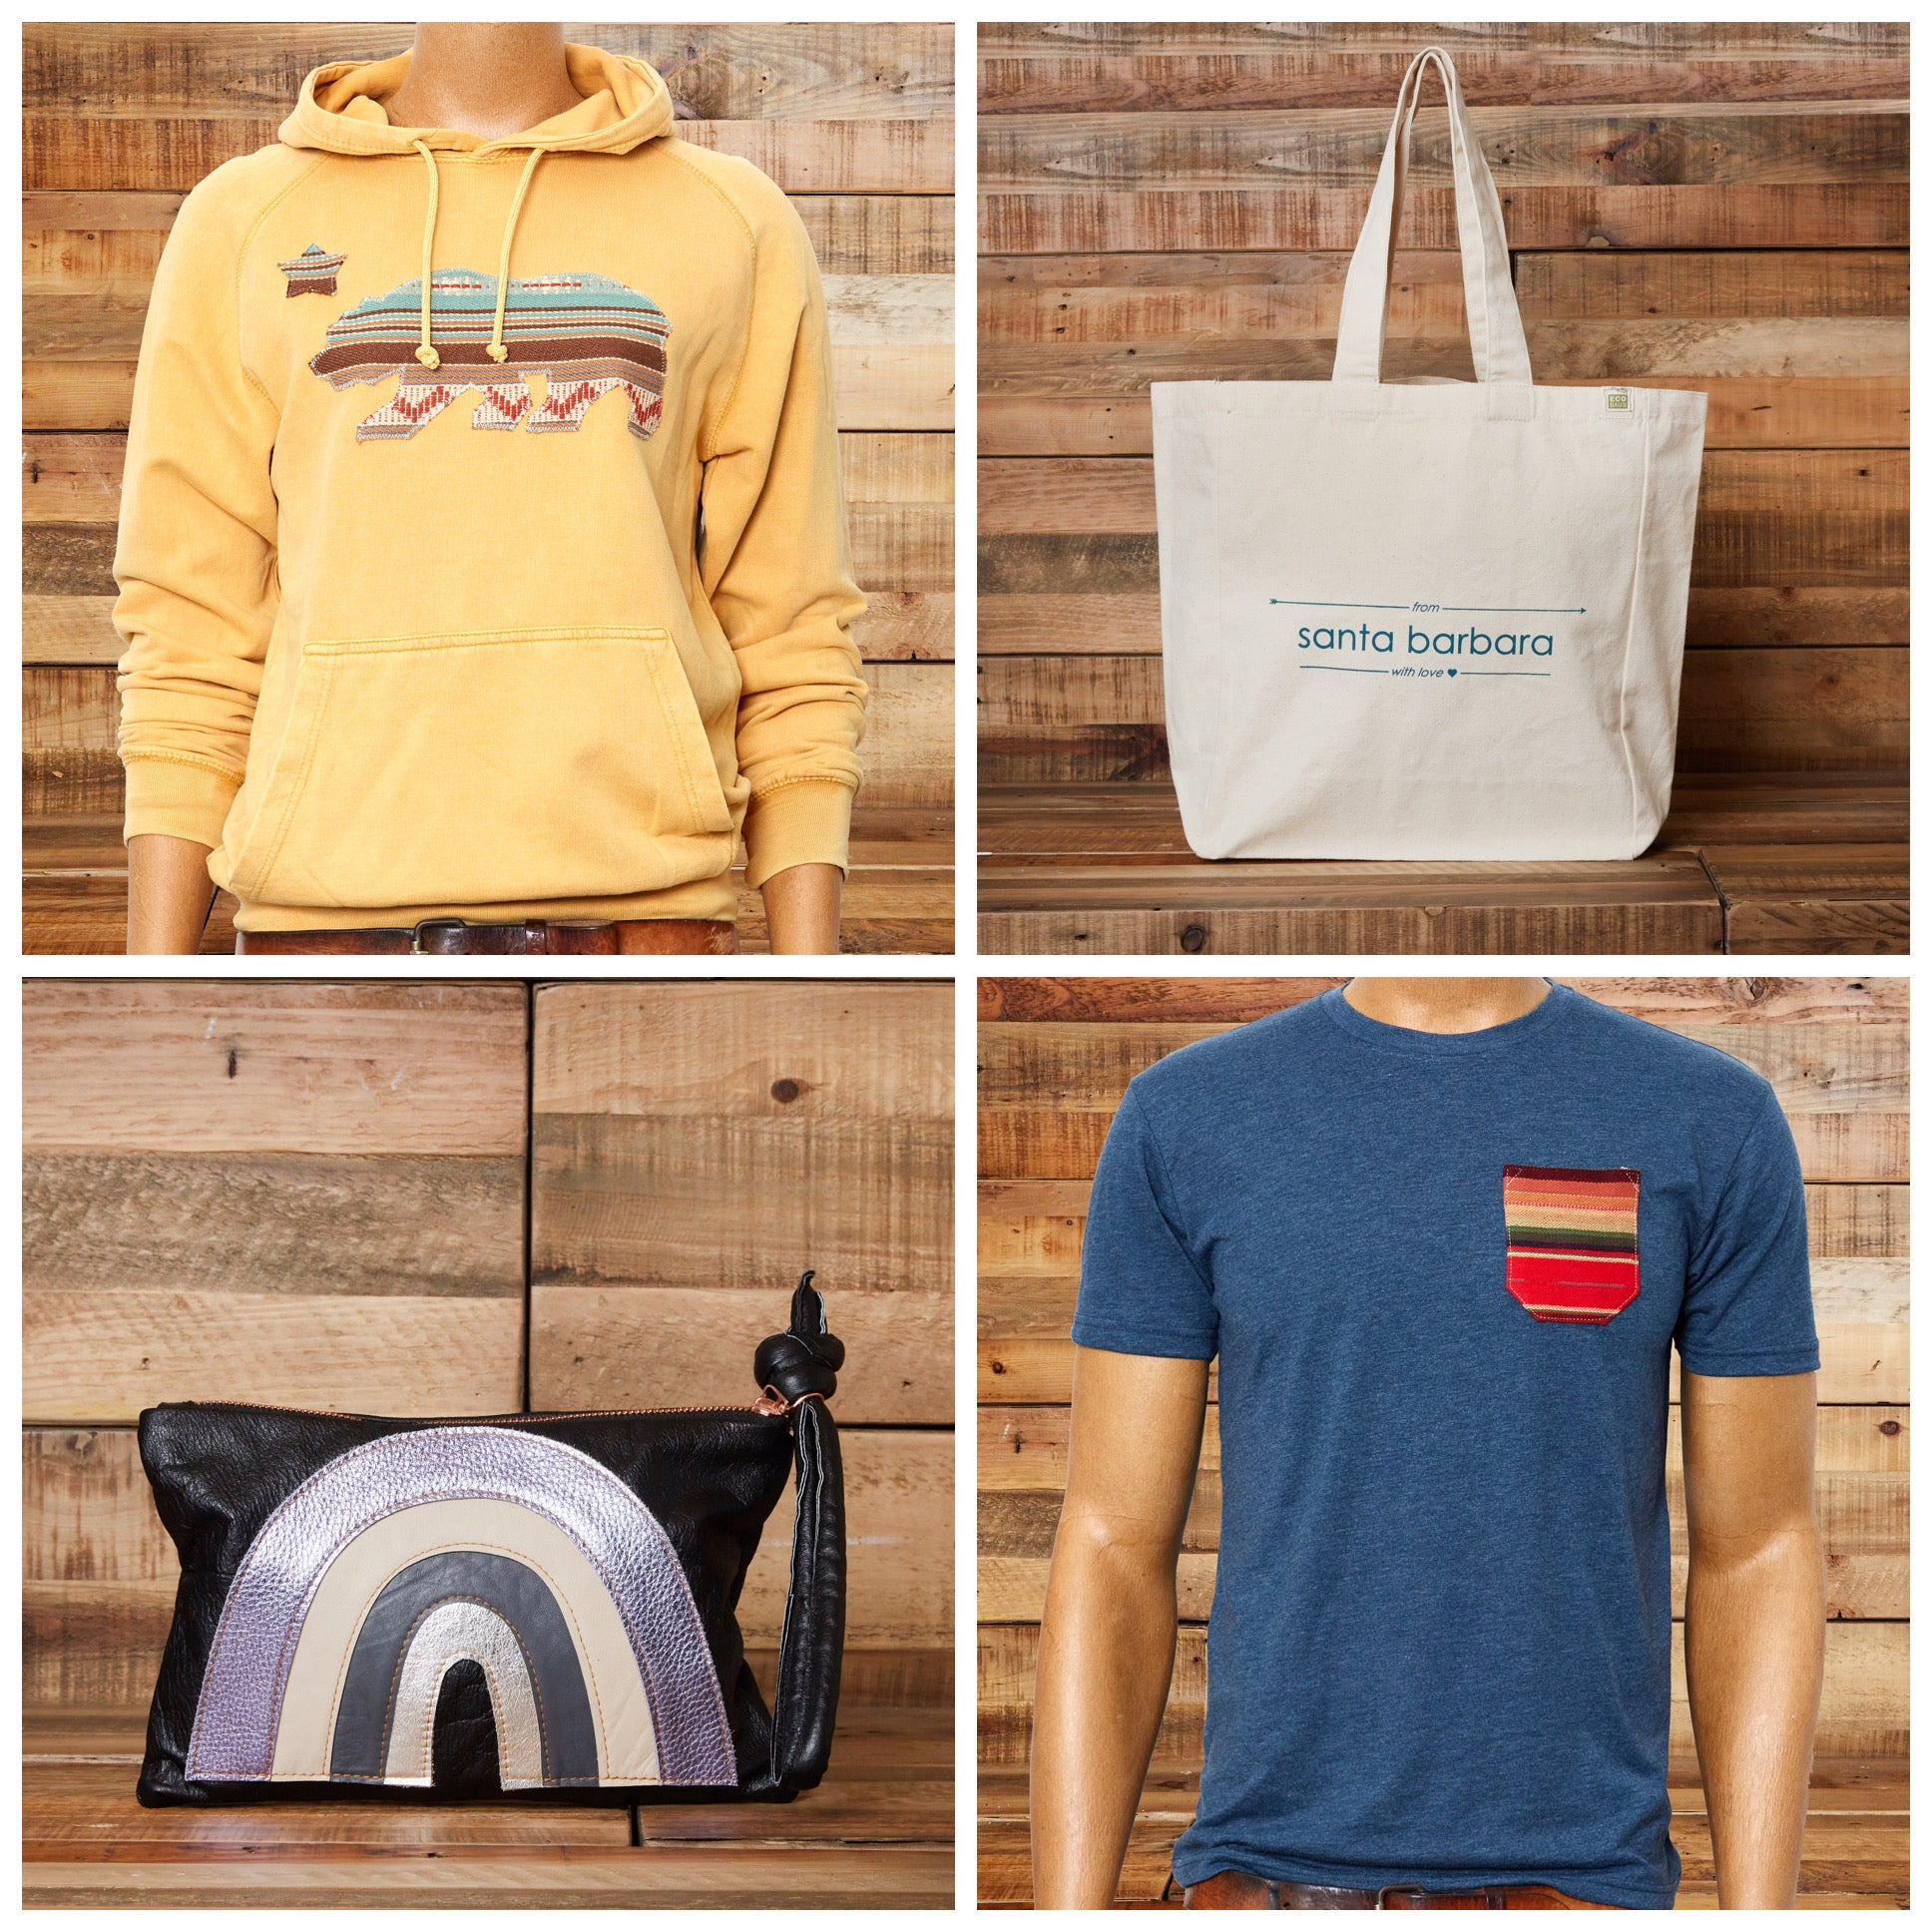 Clothing + Totes